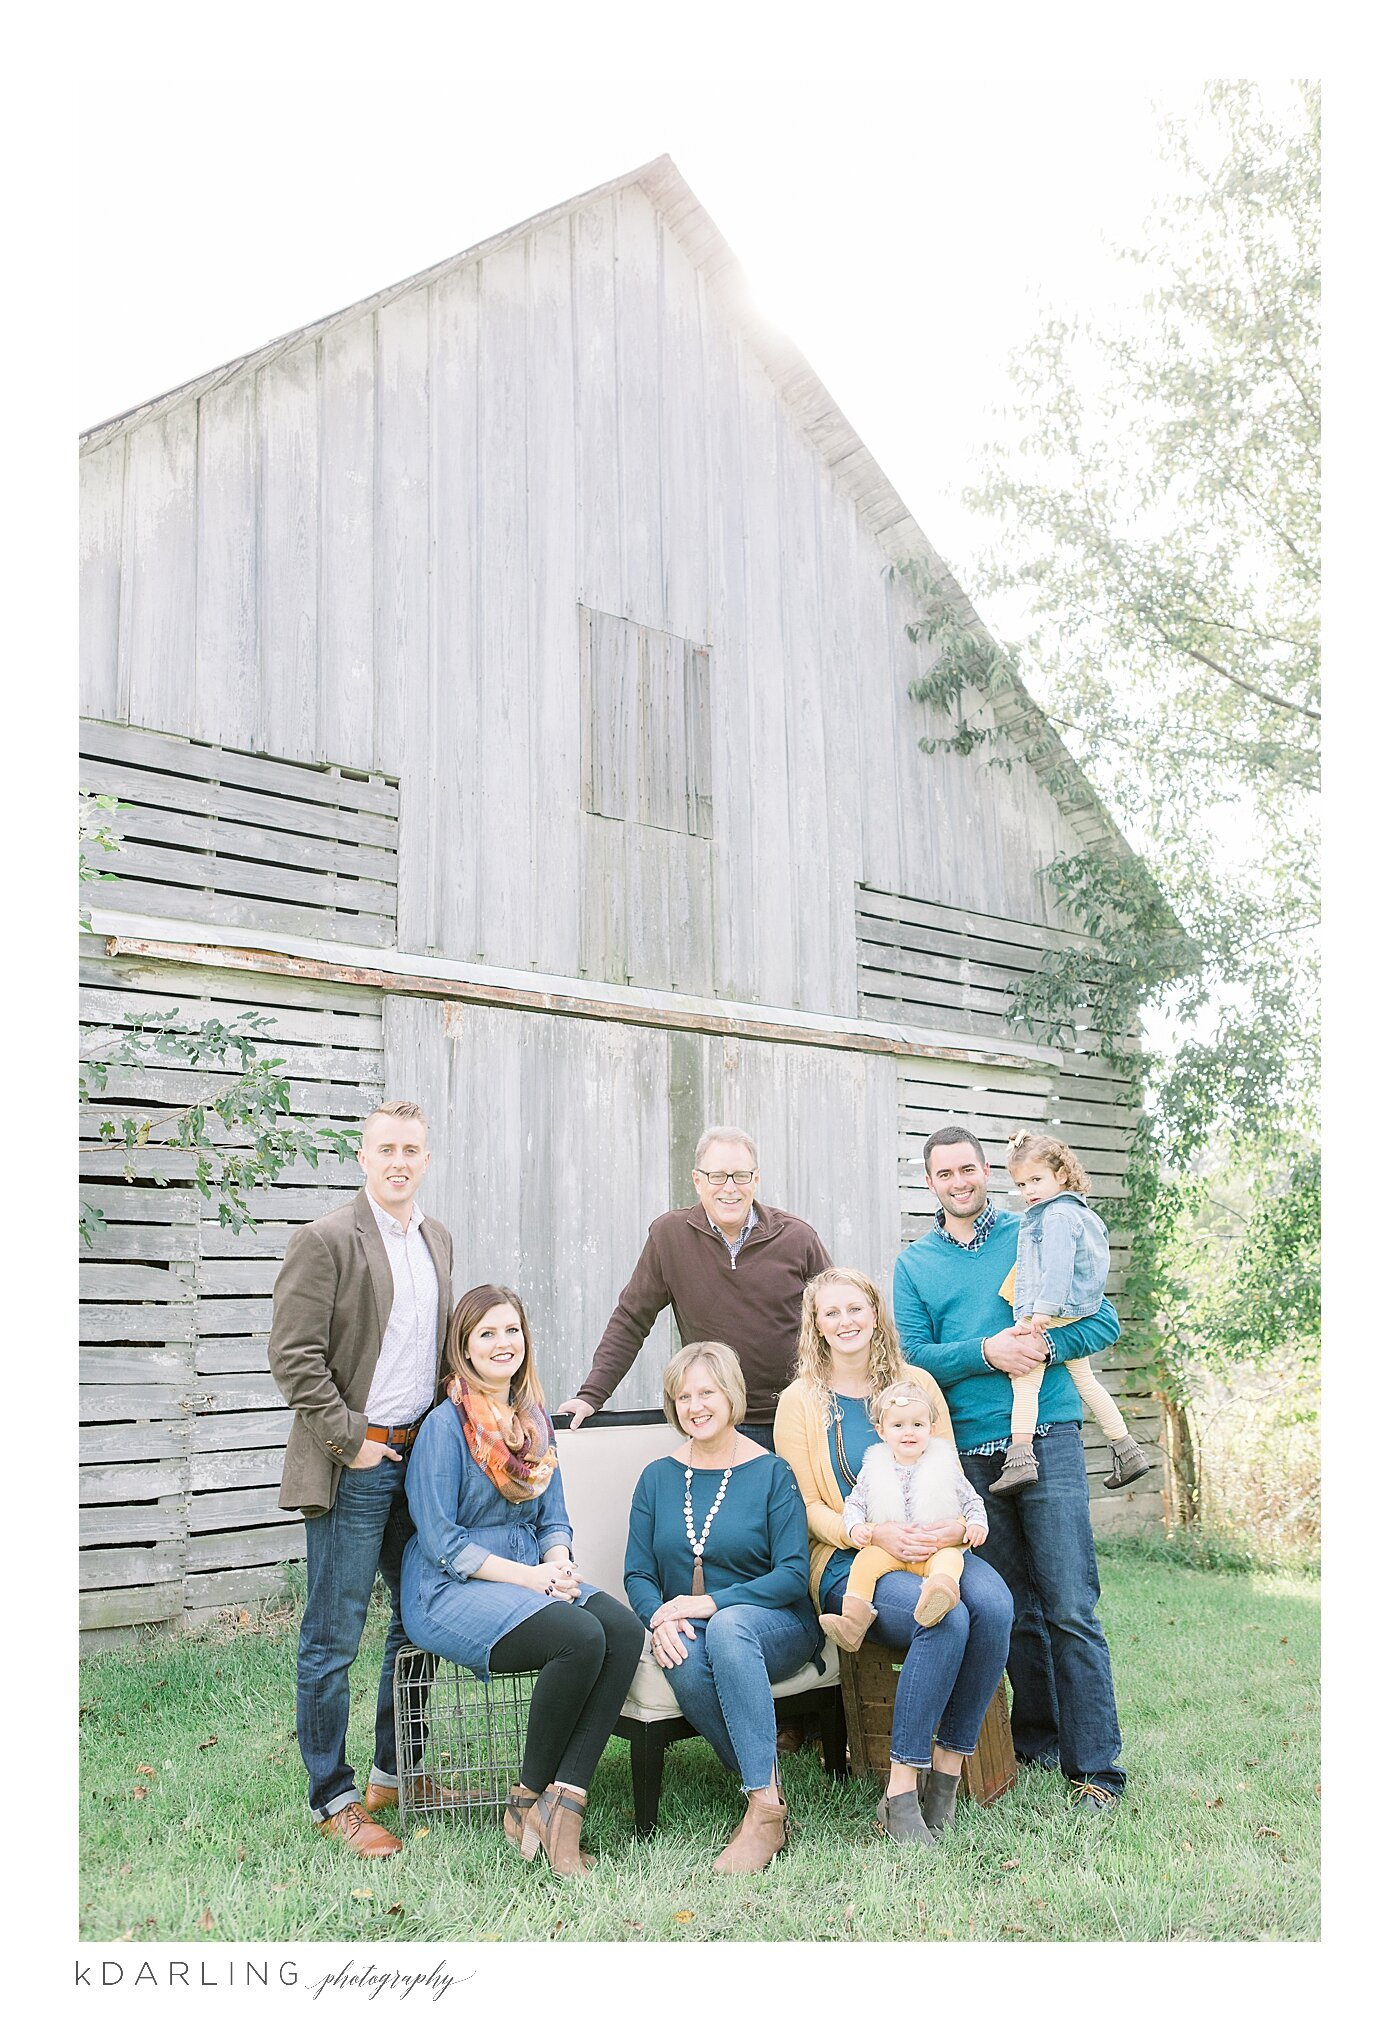 What-to-wear-for-your-family-pictures-champaign-county-il-photographer_0005.jpg